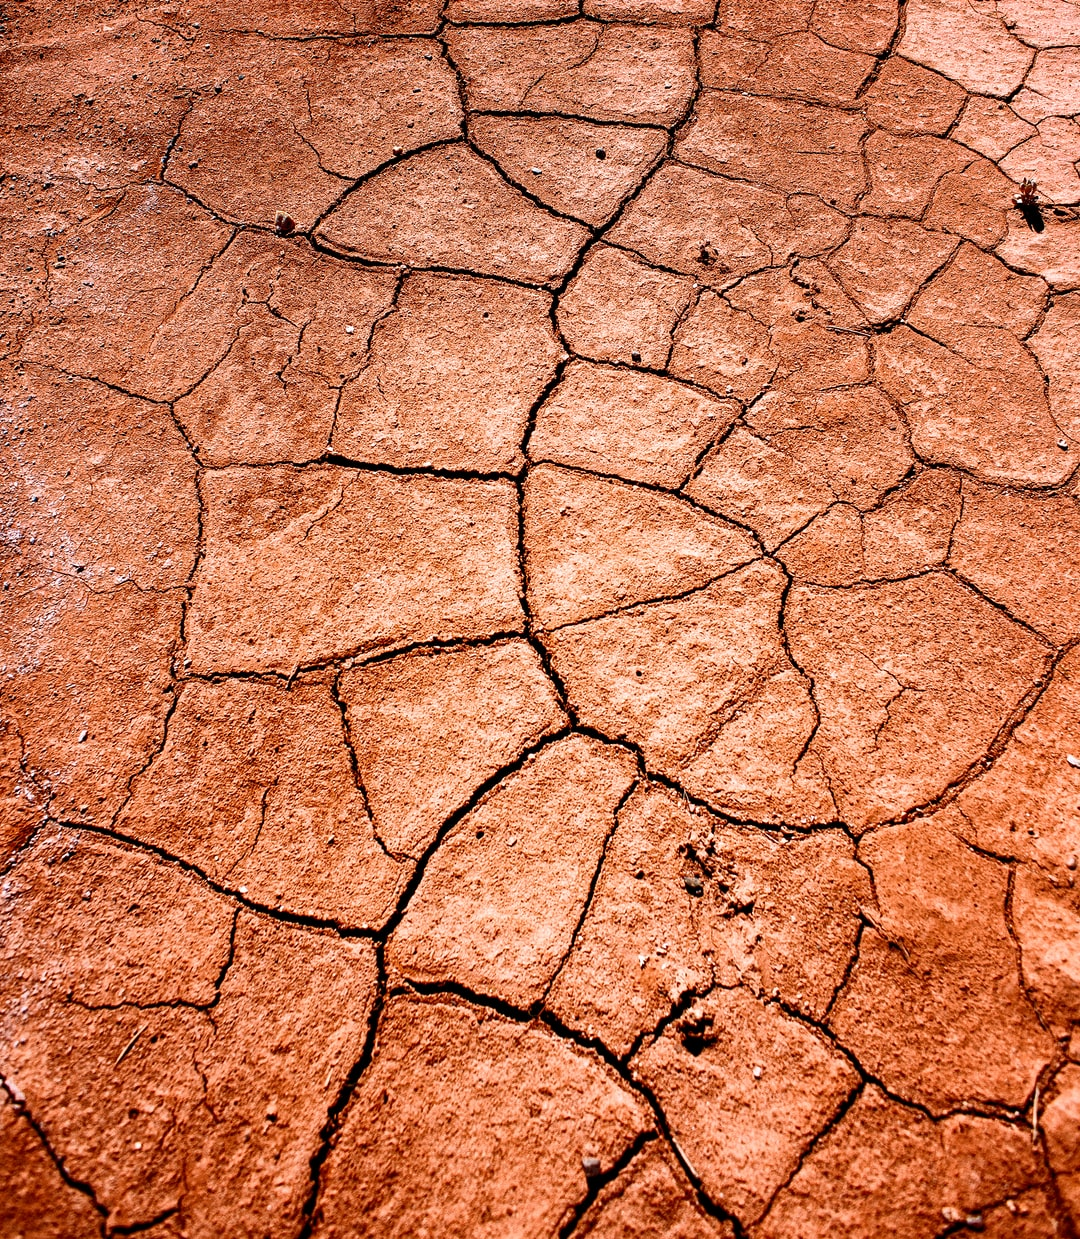 The red clay forms such amazing shapes as it bakes in the hot southern Utah desert.